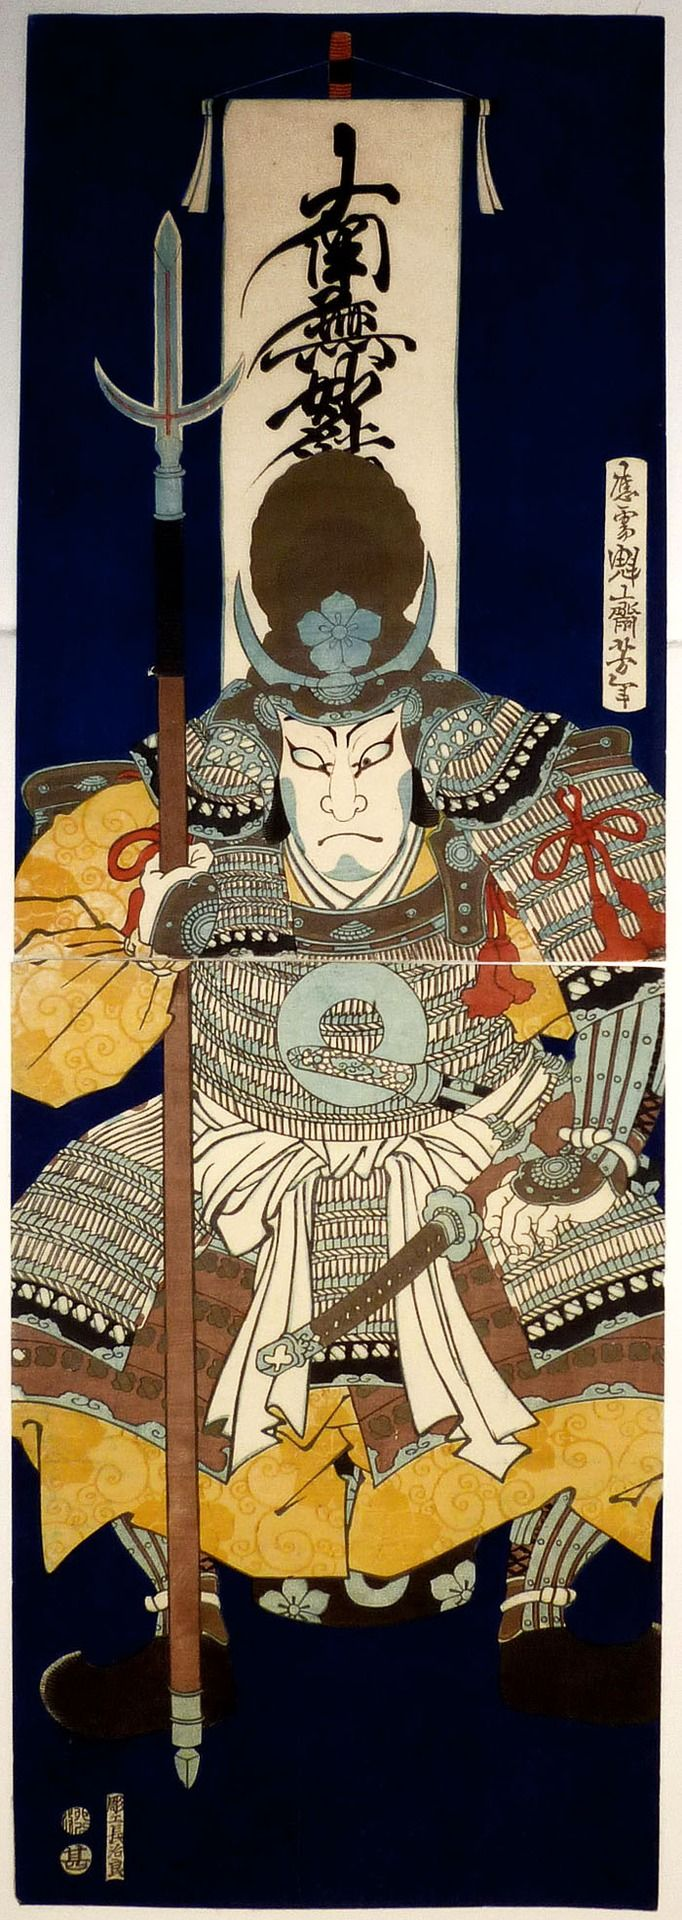 """Kato Kiyomasa. Vertical Dyptich by Yoshitoshi Tsukioka. Published by Maruya Jimpachi, 1867A vertical diptych of Kato Kiyomasa ( 1562-1611 ). A famous general best known for his participation in the invasion of Korea. Shows him seated before his personal banner inscribed Nan myo no rengekyo, """"Hail Lotus Sutra."""" On his breast is his mon, a large ring."""